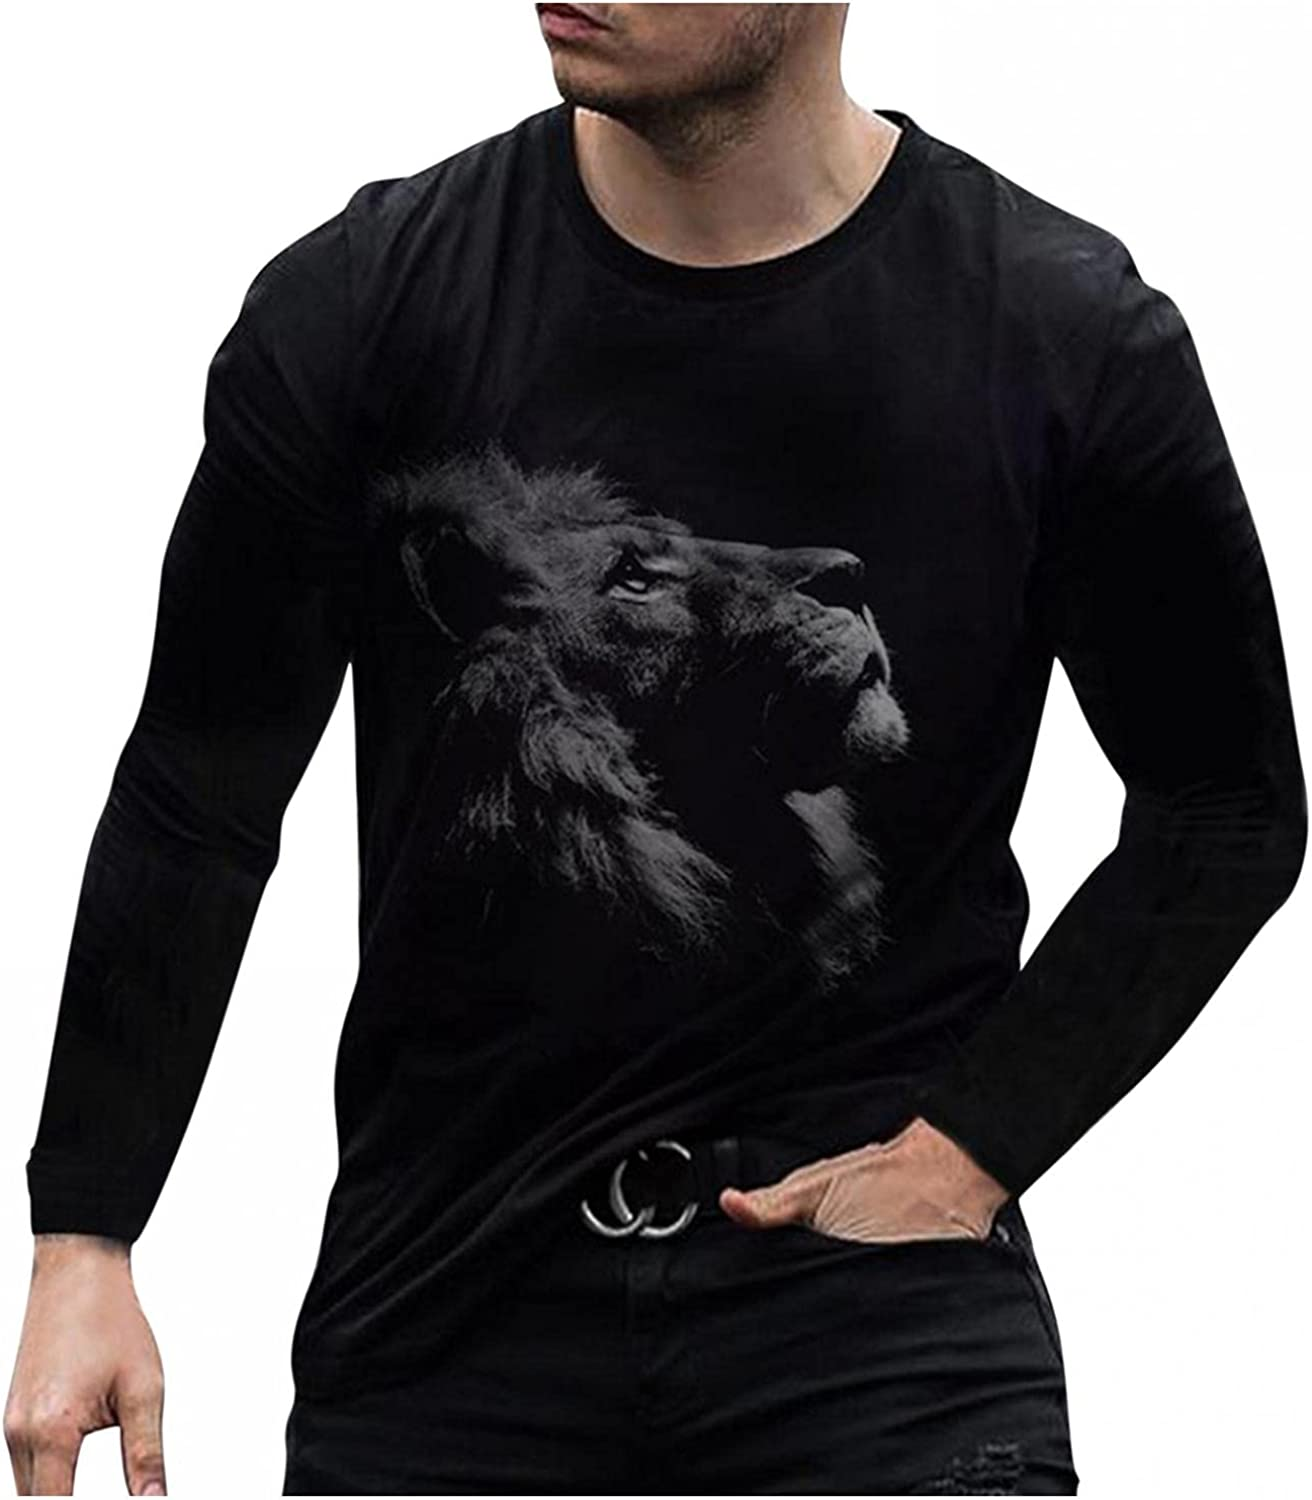 WUAI-Men Long Sleeve Graphic T-Shirts Funny 3D Digital Animal Printed Crewneck Slim Fit Athletic Workout Muscle Tops